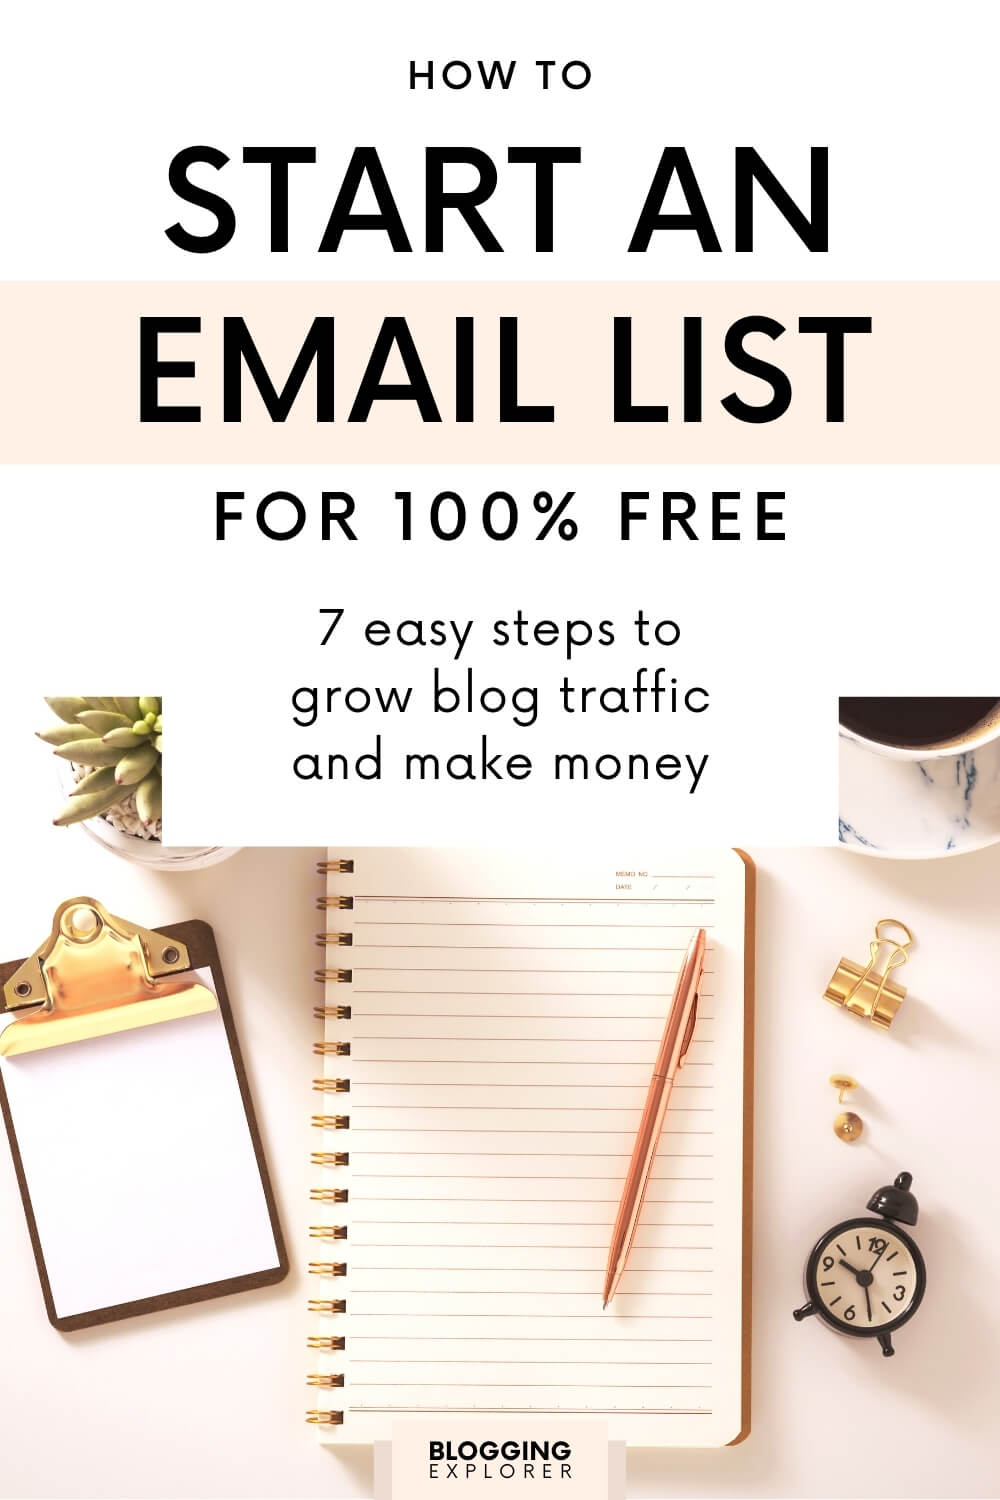 How to Start an Email List as a Beginner Blogger: 7 Easy Steps